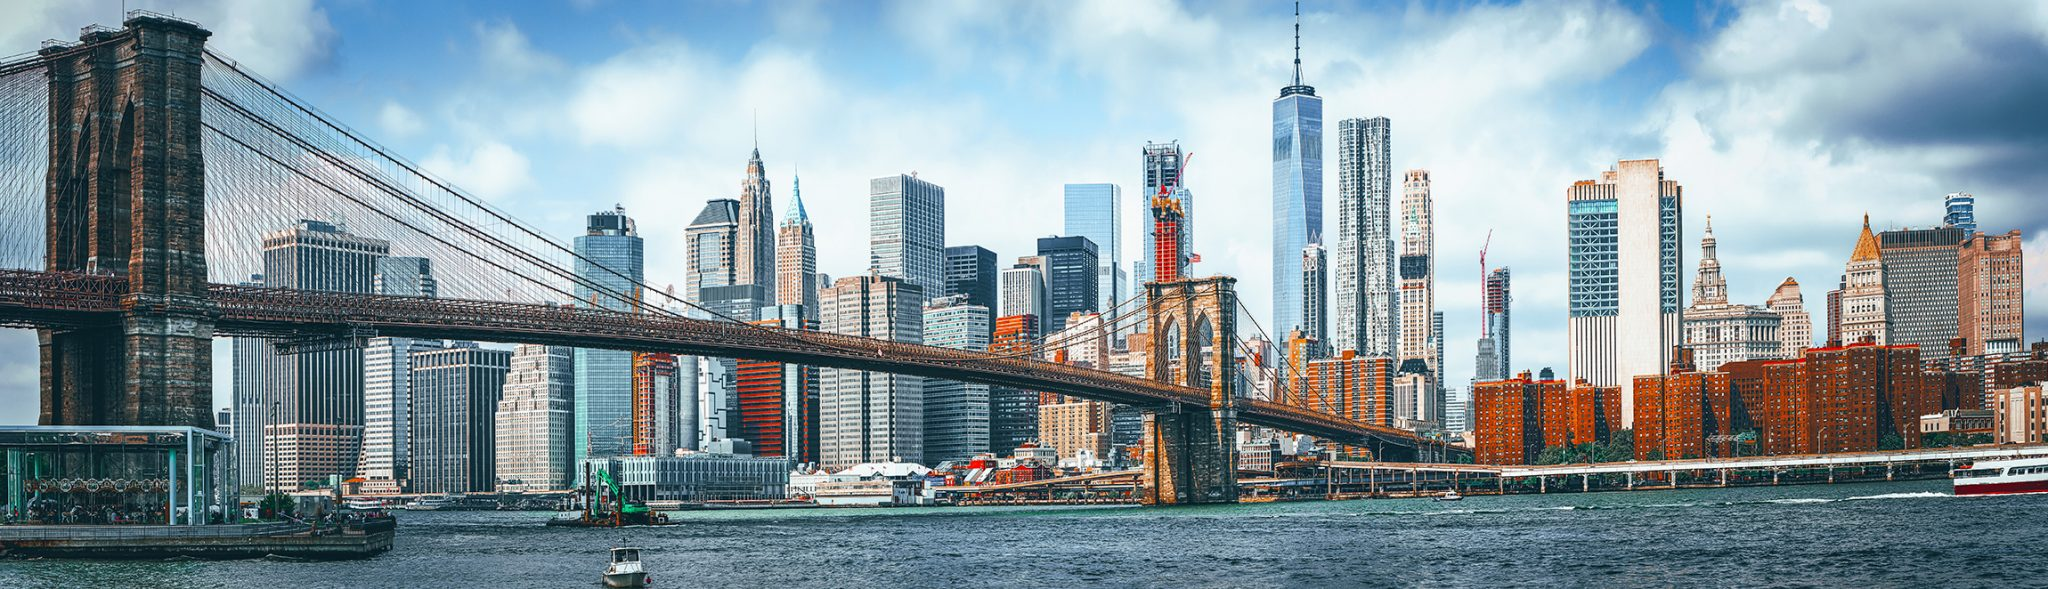 View of the Brooklyn Bridge and lower Manhattan